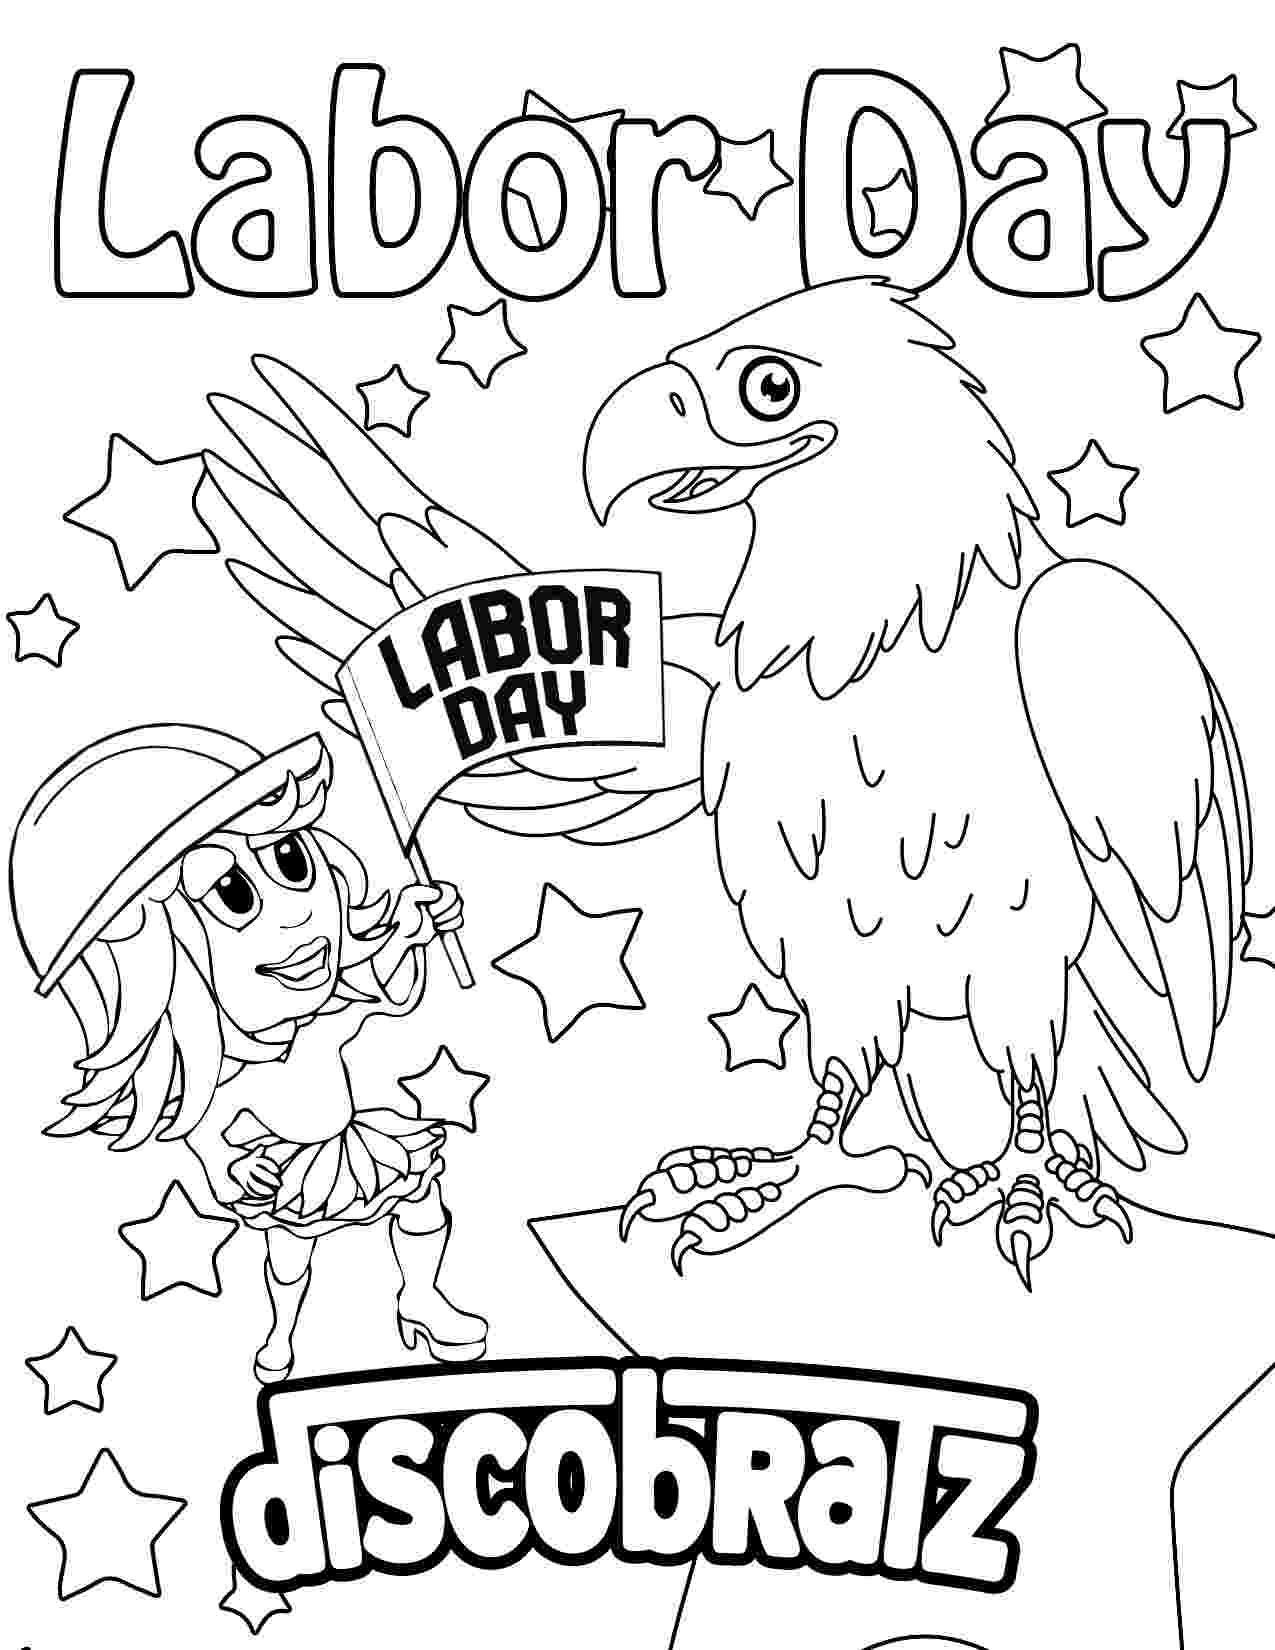 labor day coloring pages discobratz celebrates the workers of the world with a coloring labor pages day